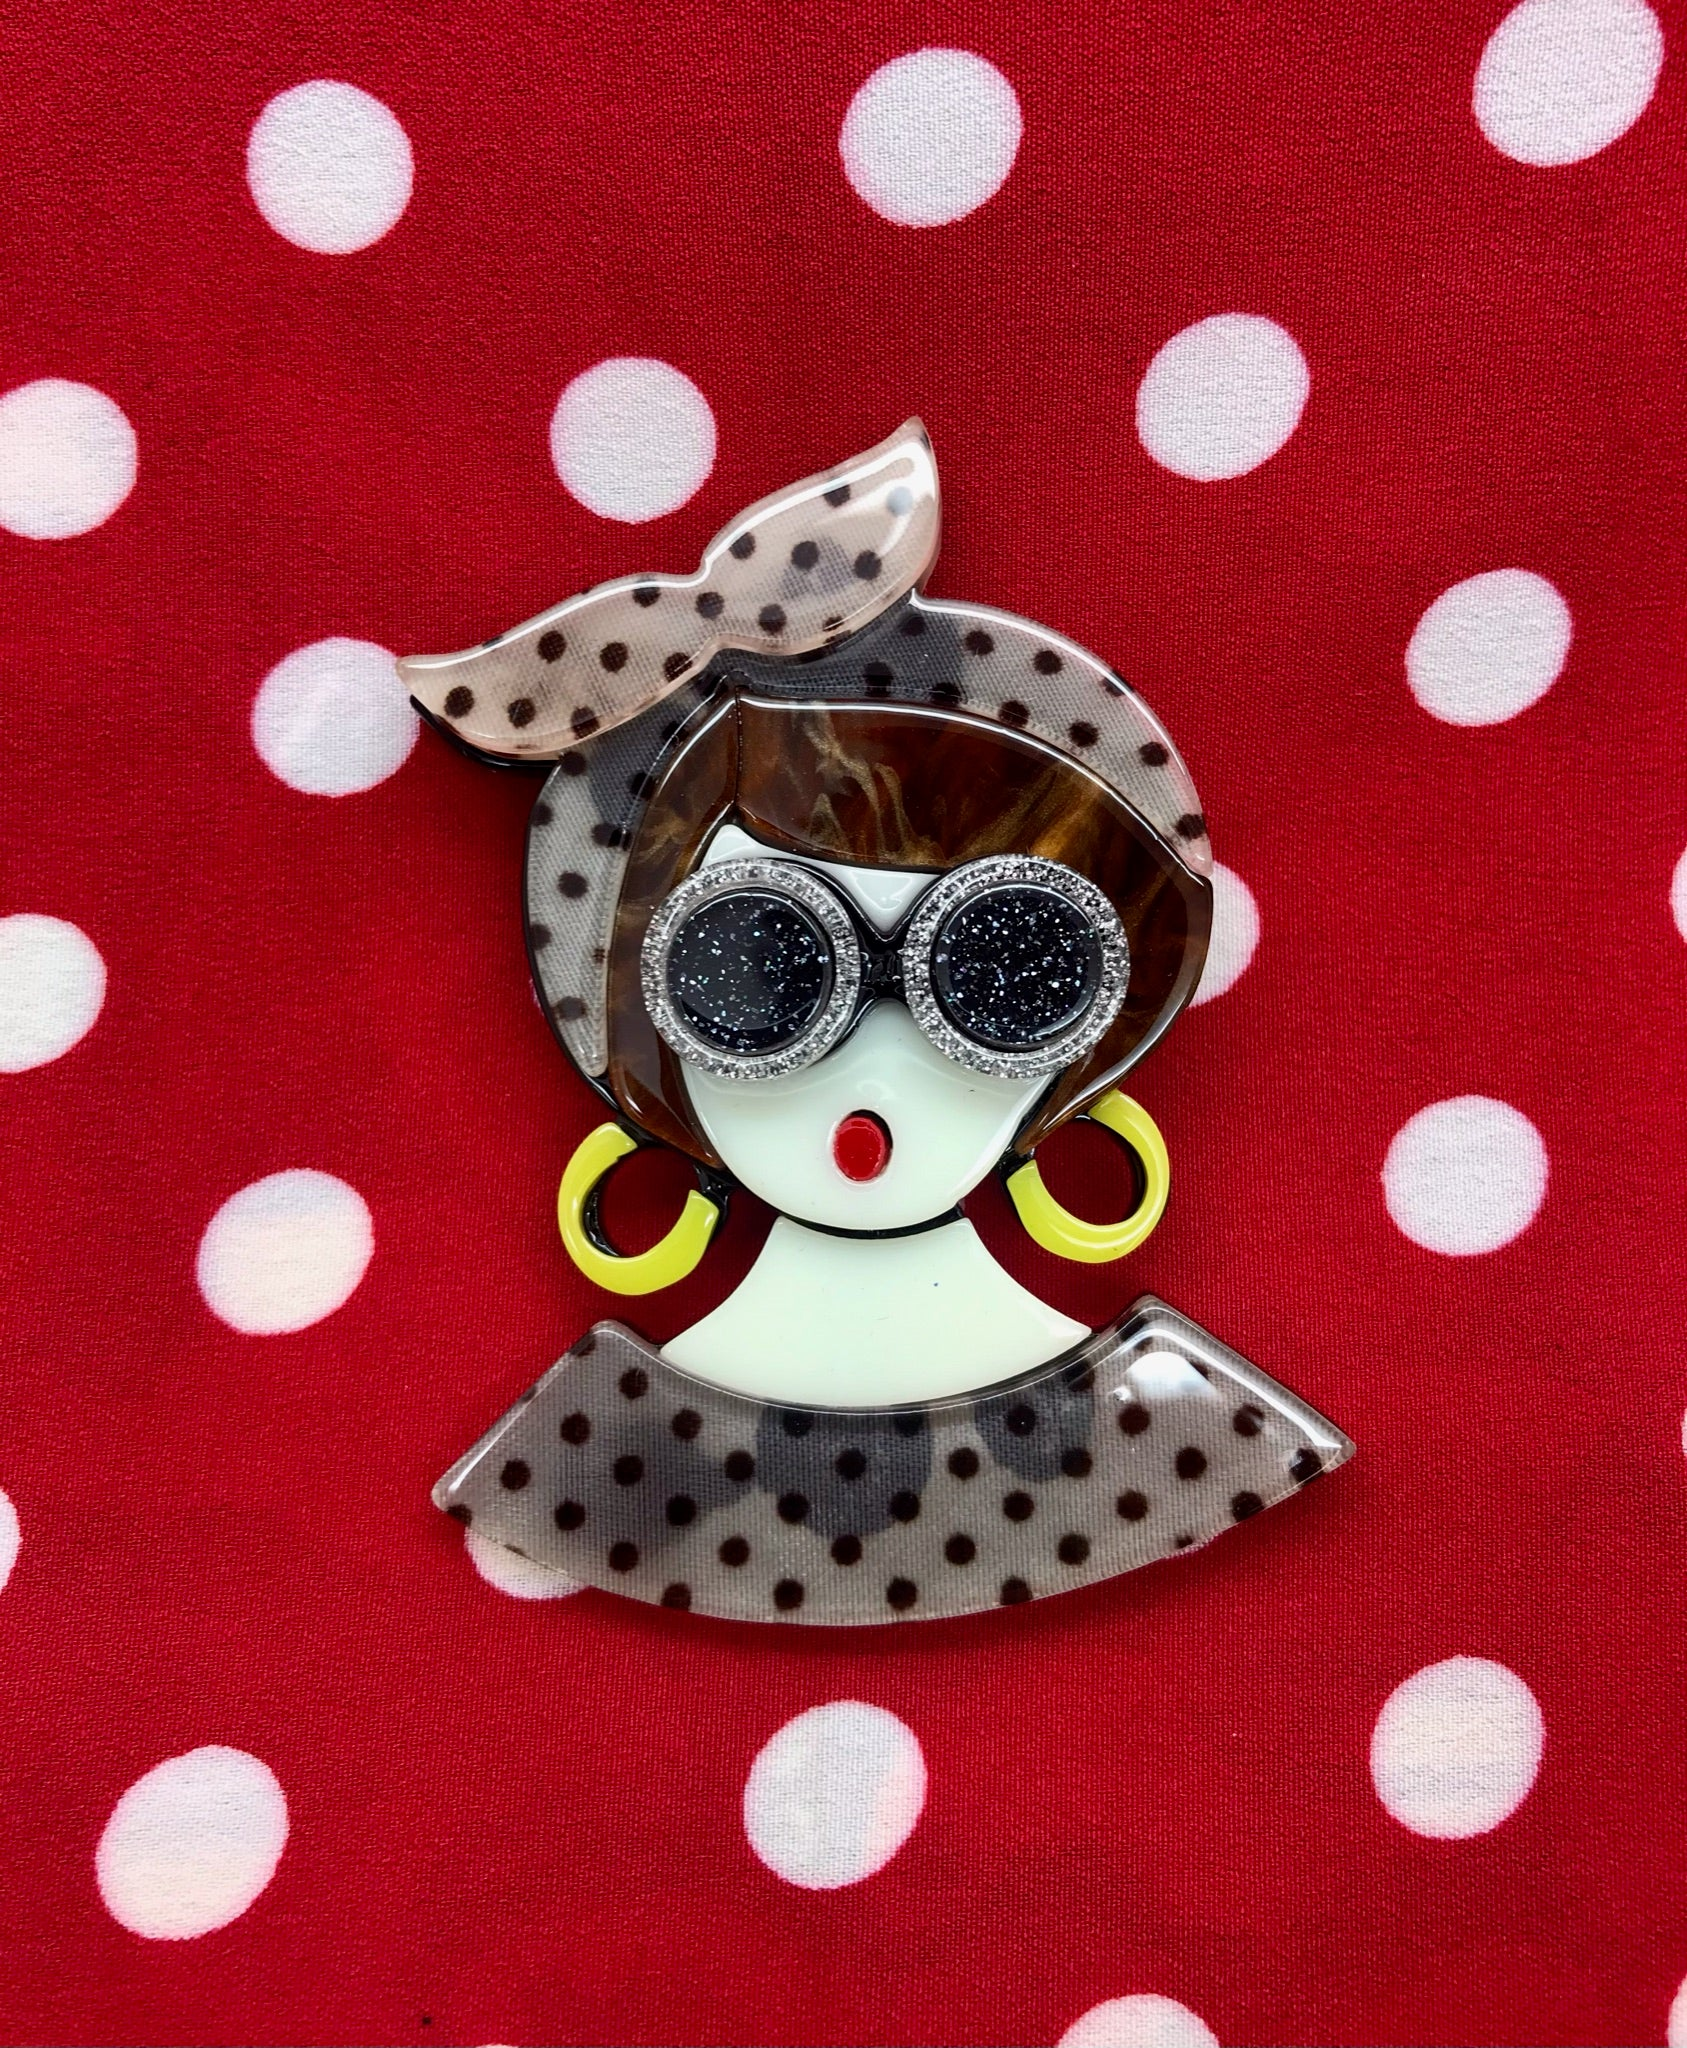 Kitsch Vintage Lady Acrylic Pin Brooch, Fun Rockabilly Style & Oh So Kitsch - RocknRomance True 1940s & 1950s Vintage Style